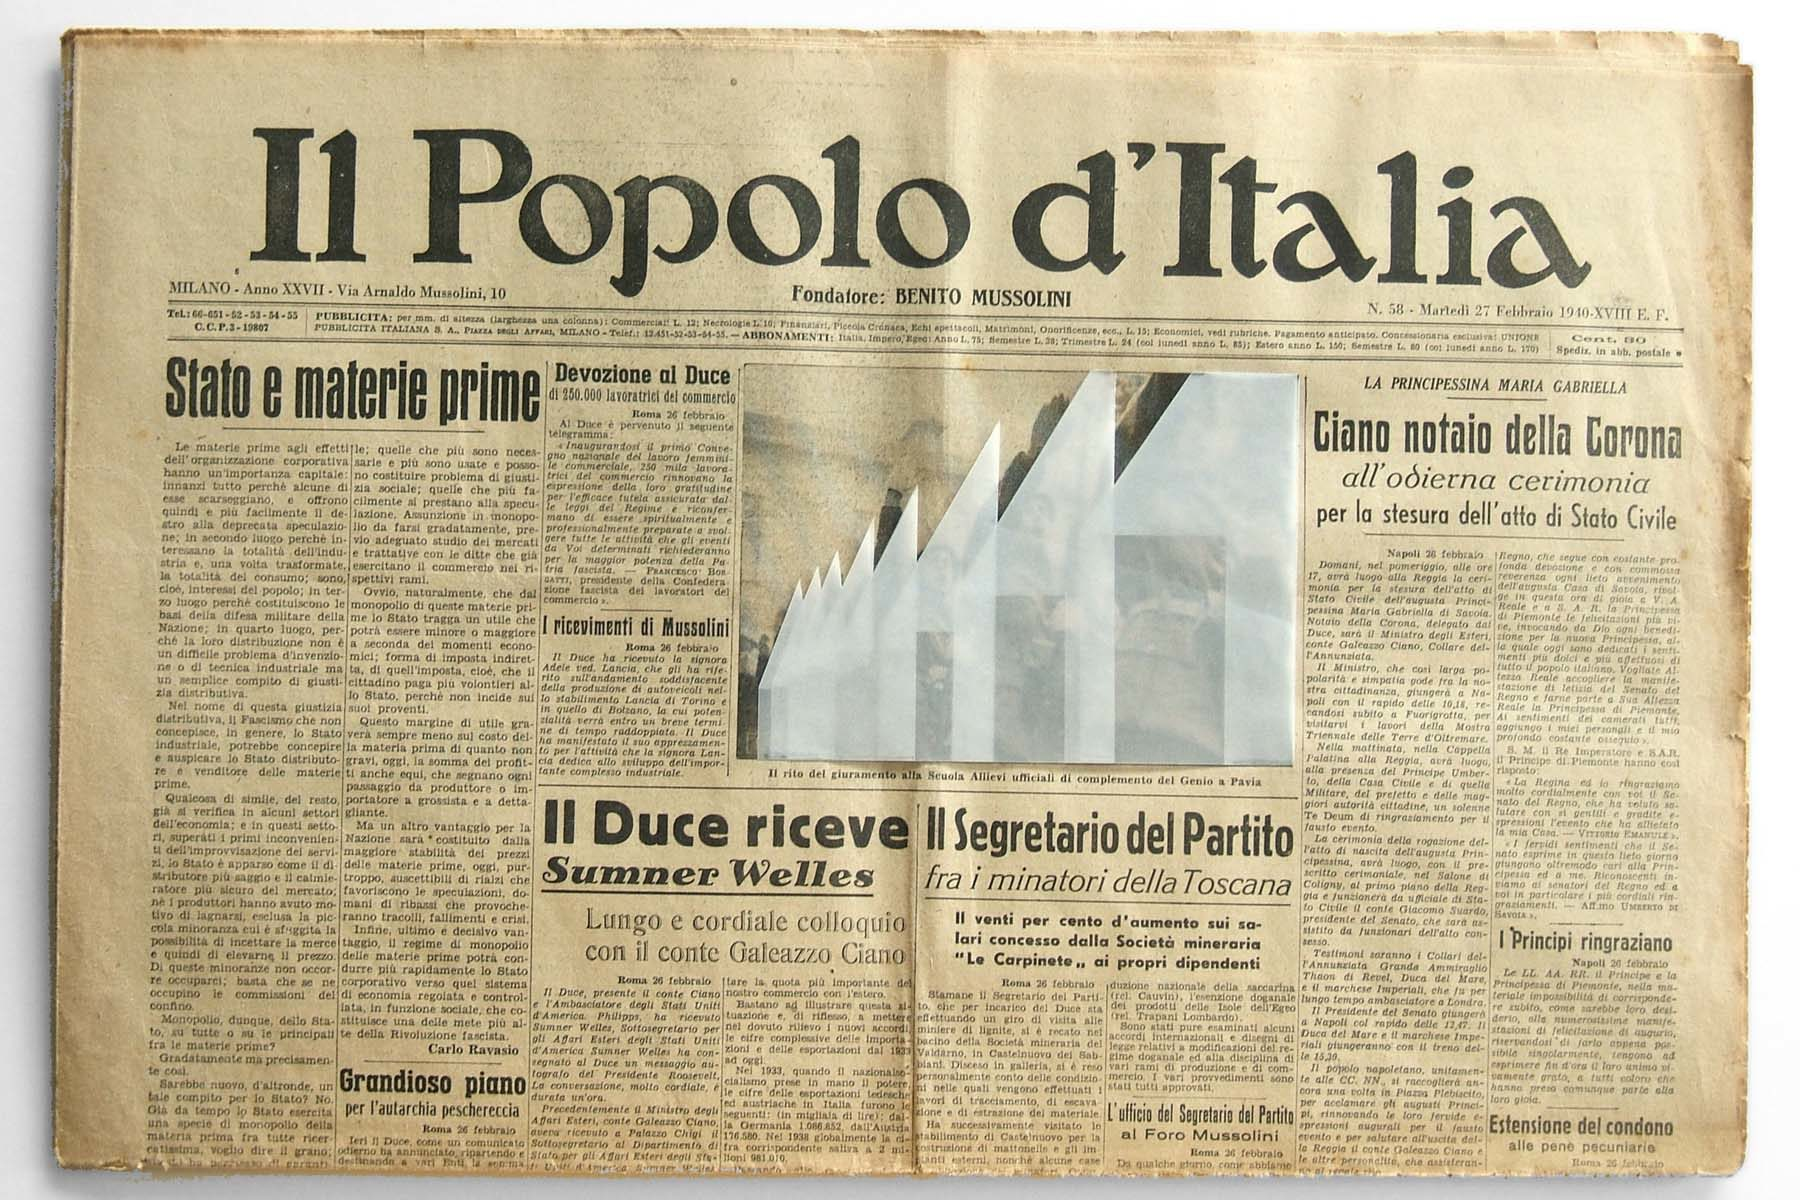 G. Morbin, Il Popolo d'Italia, 2007, collage on vintage newspaper, 33 x 47 cm